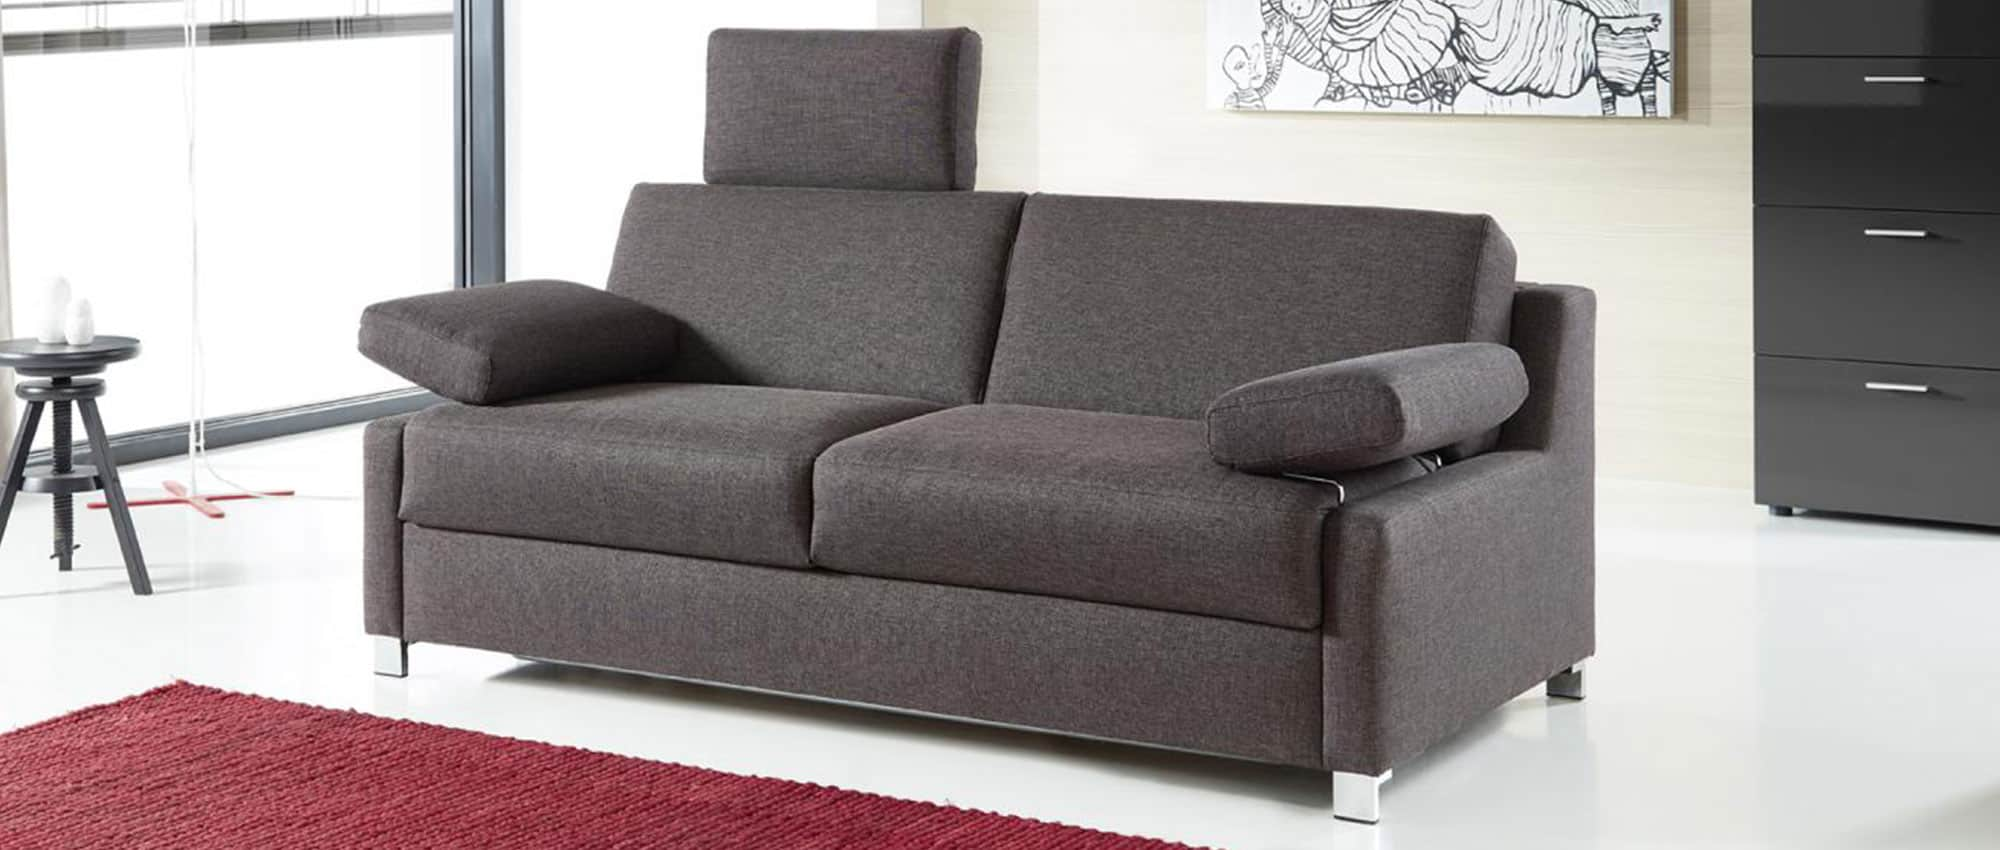 schlafsofa mit matratze und lattenrost flensburg deluxe von sofaplus. Black Bedroom Furniture Sets. Home Design Ideas